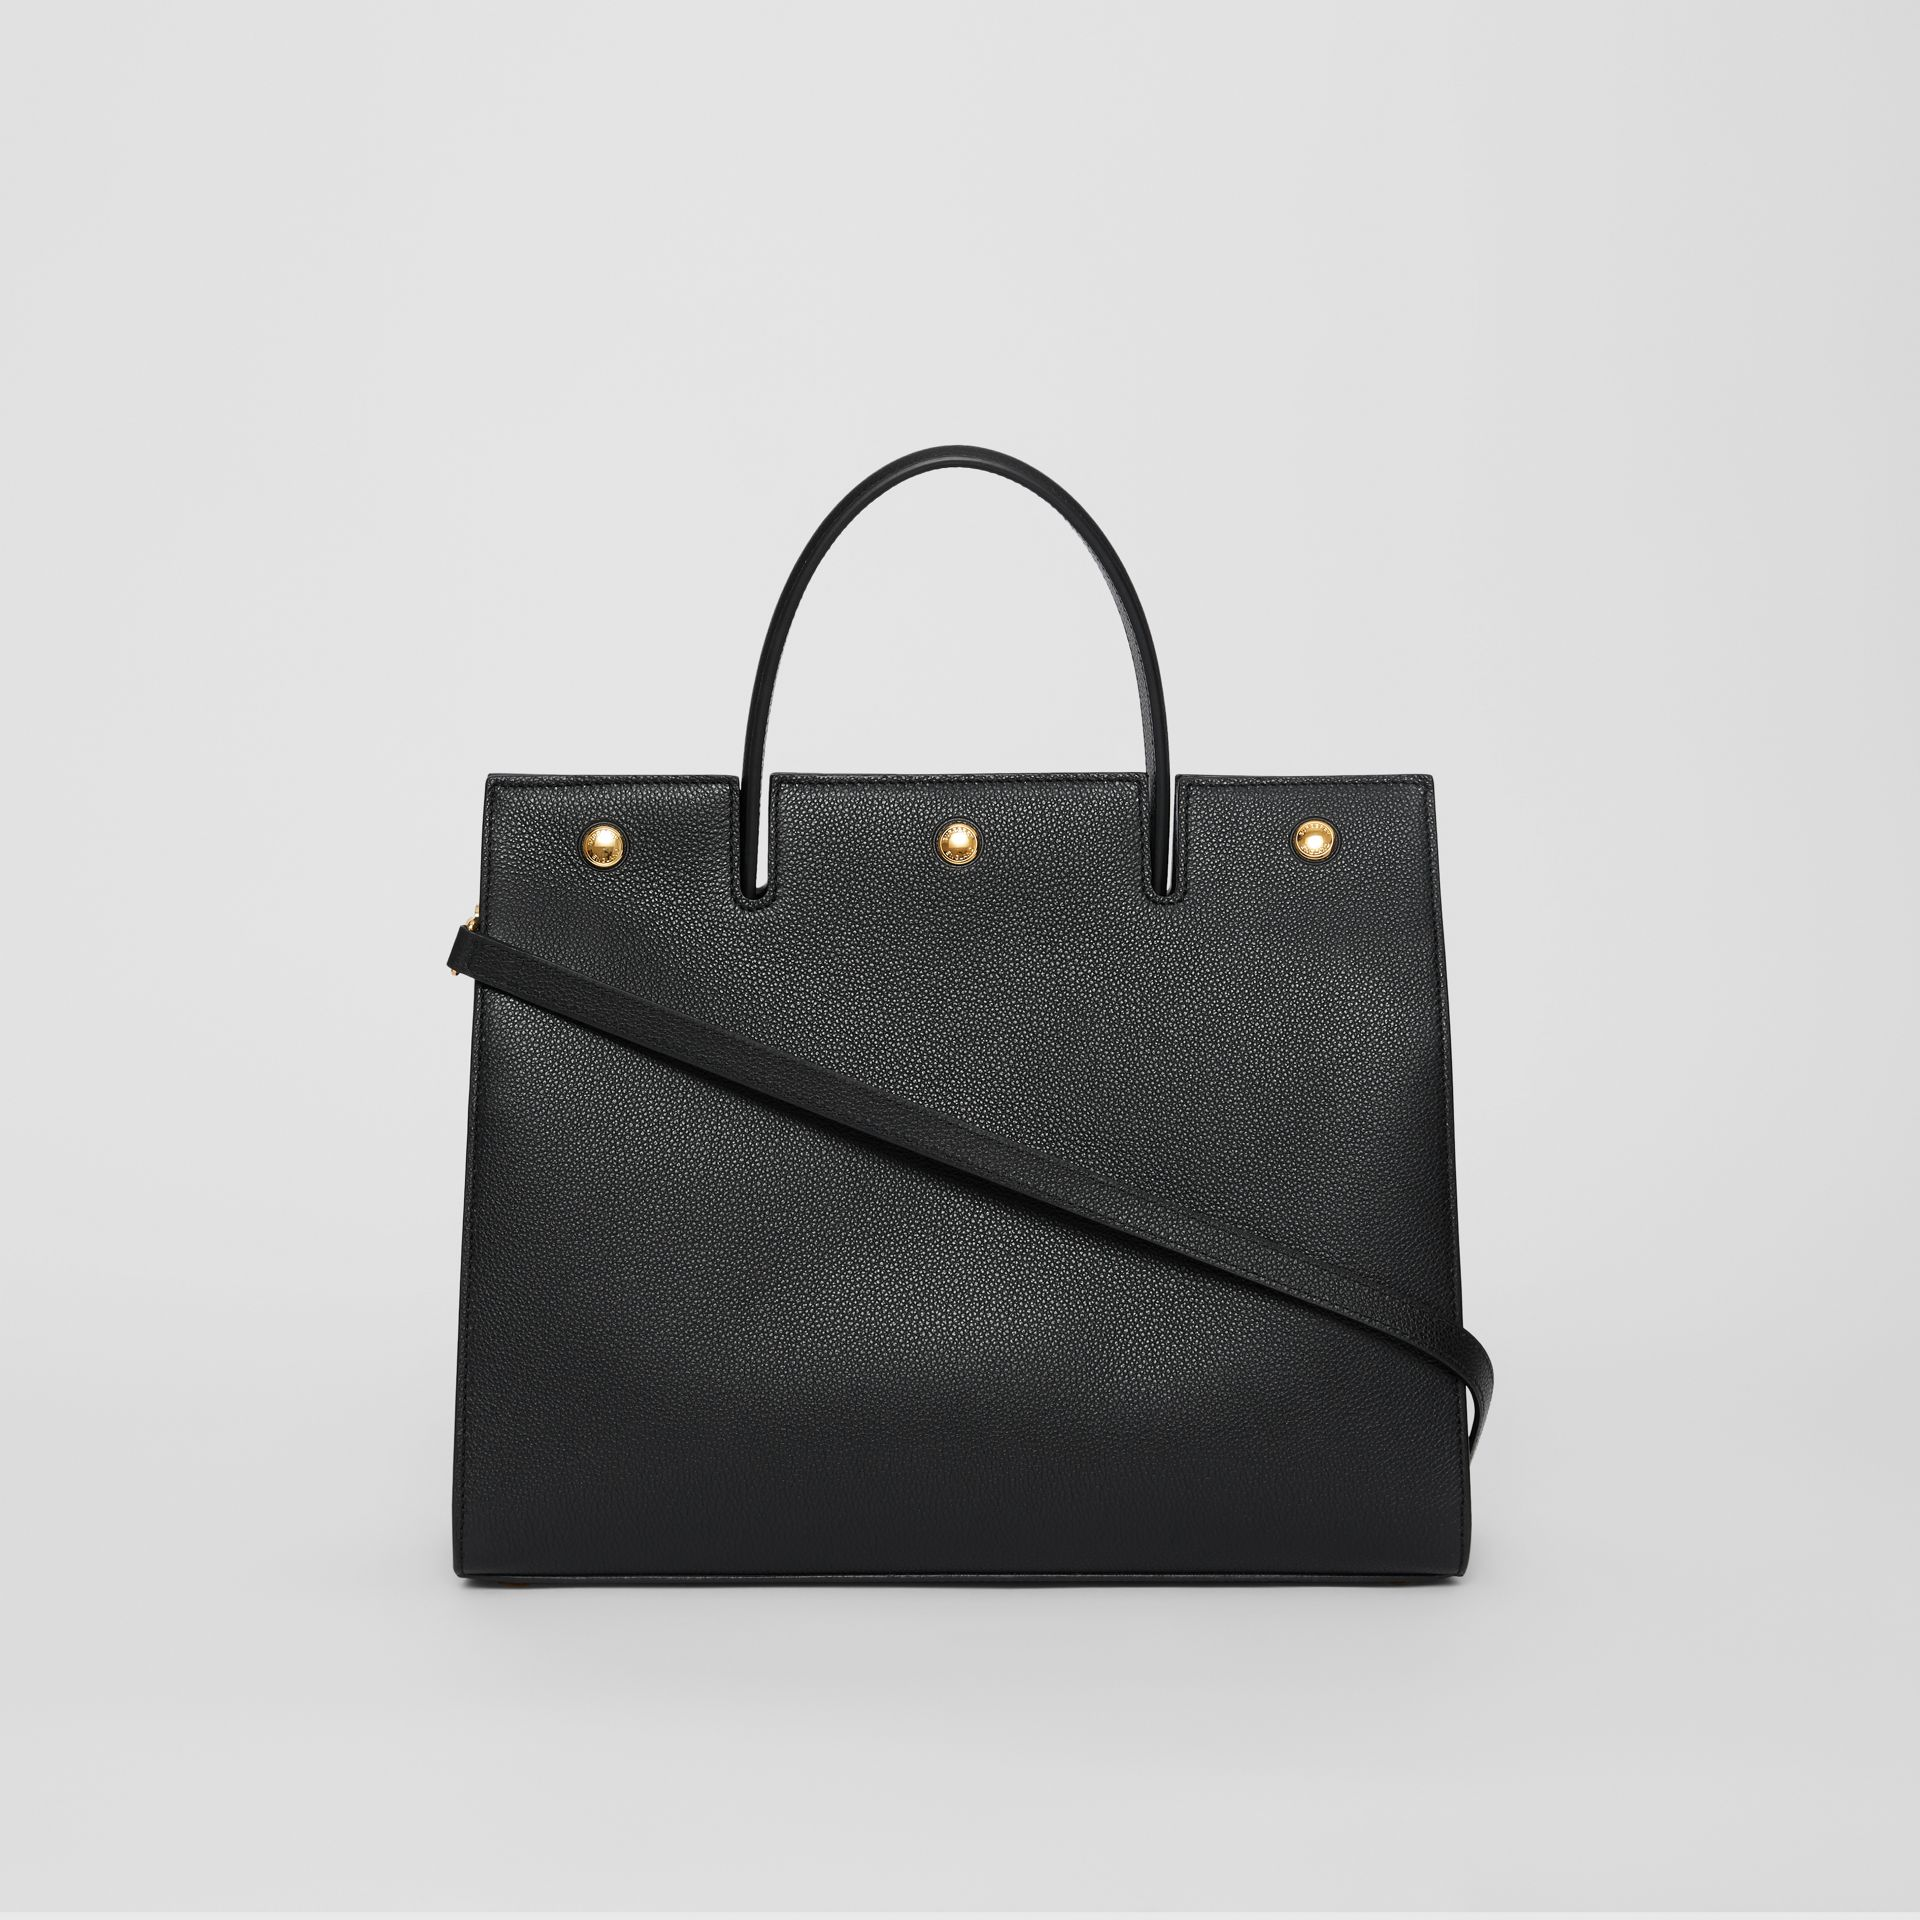 Medium Leather Title Bag in Black - Women | Burberry Singapore - gallery image 7